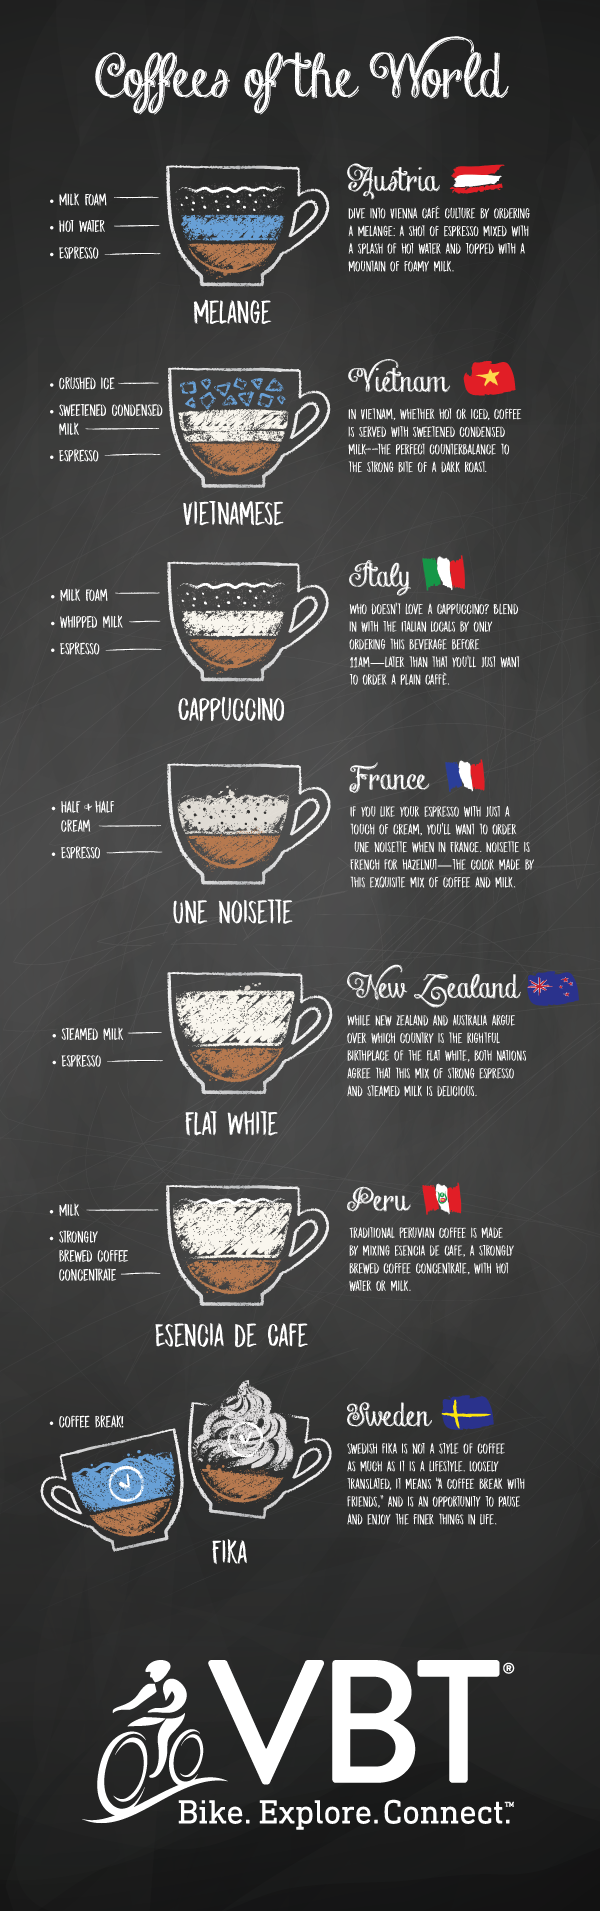 coffee-infographic-saved-for-web